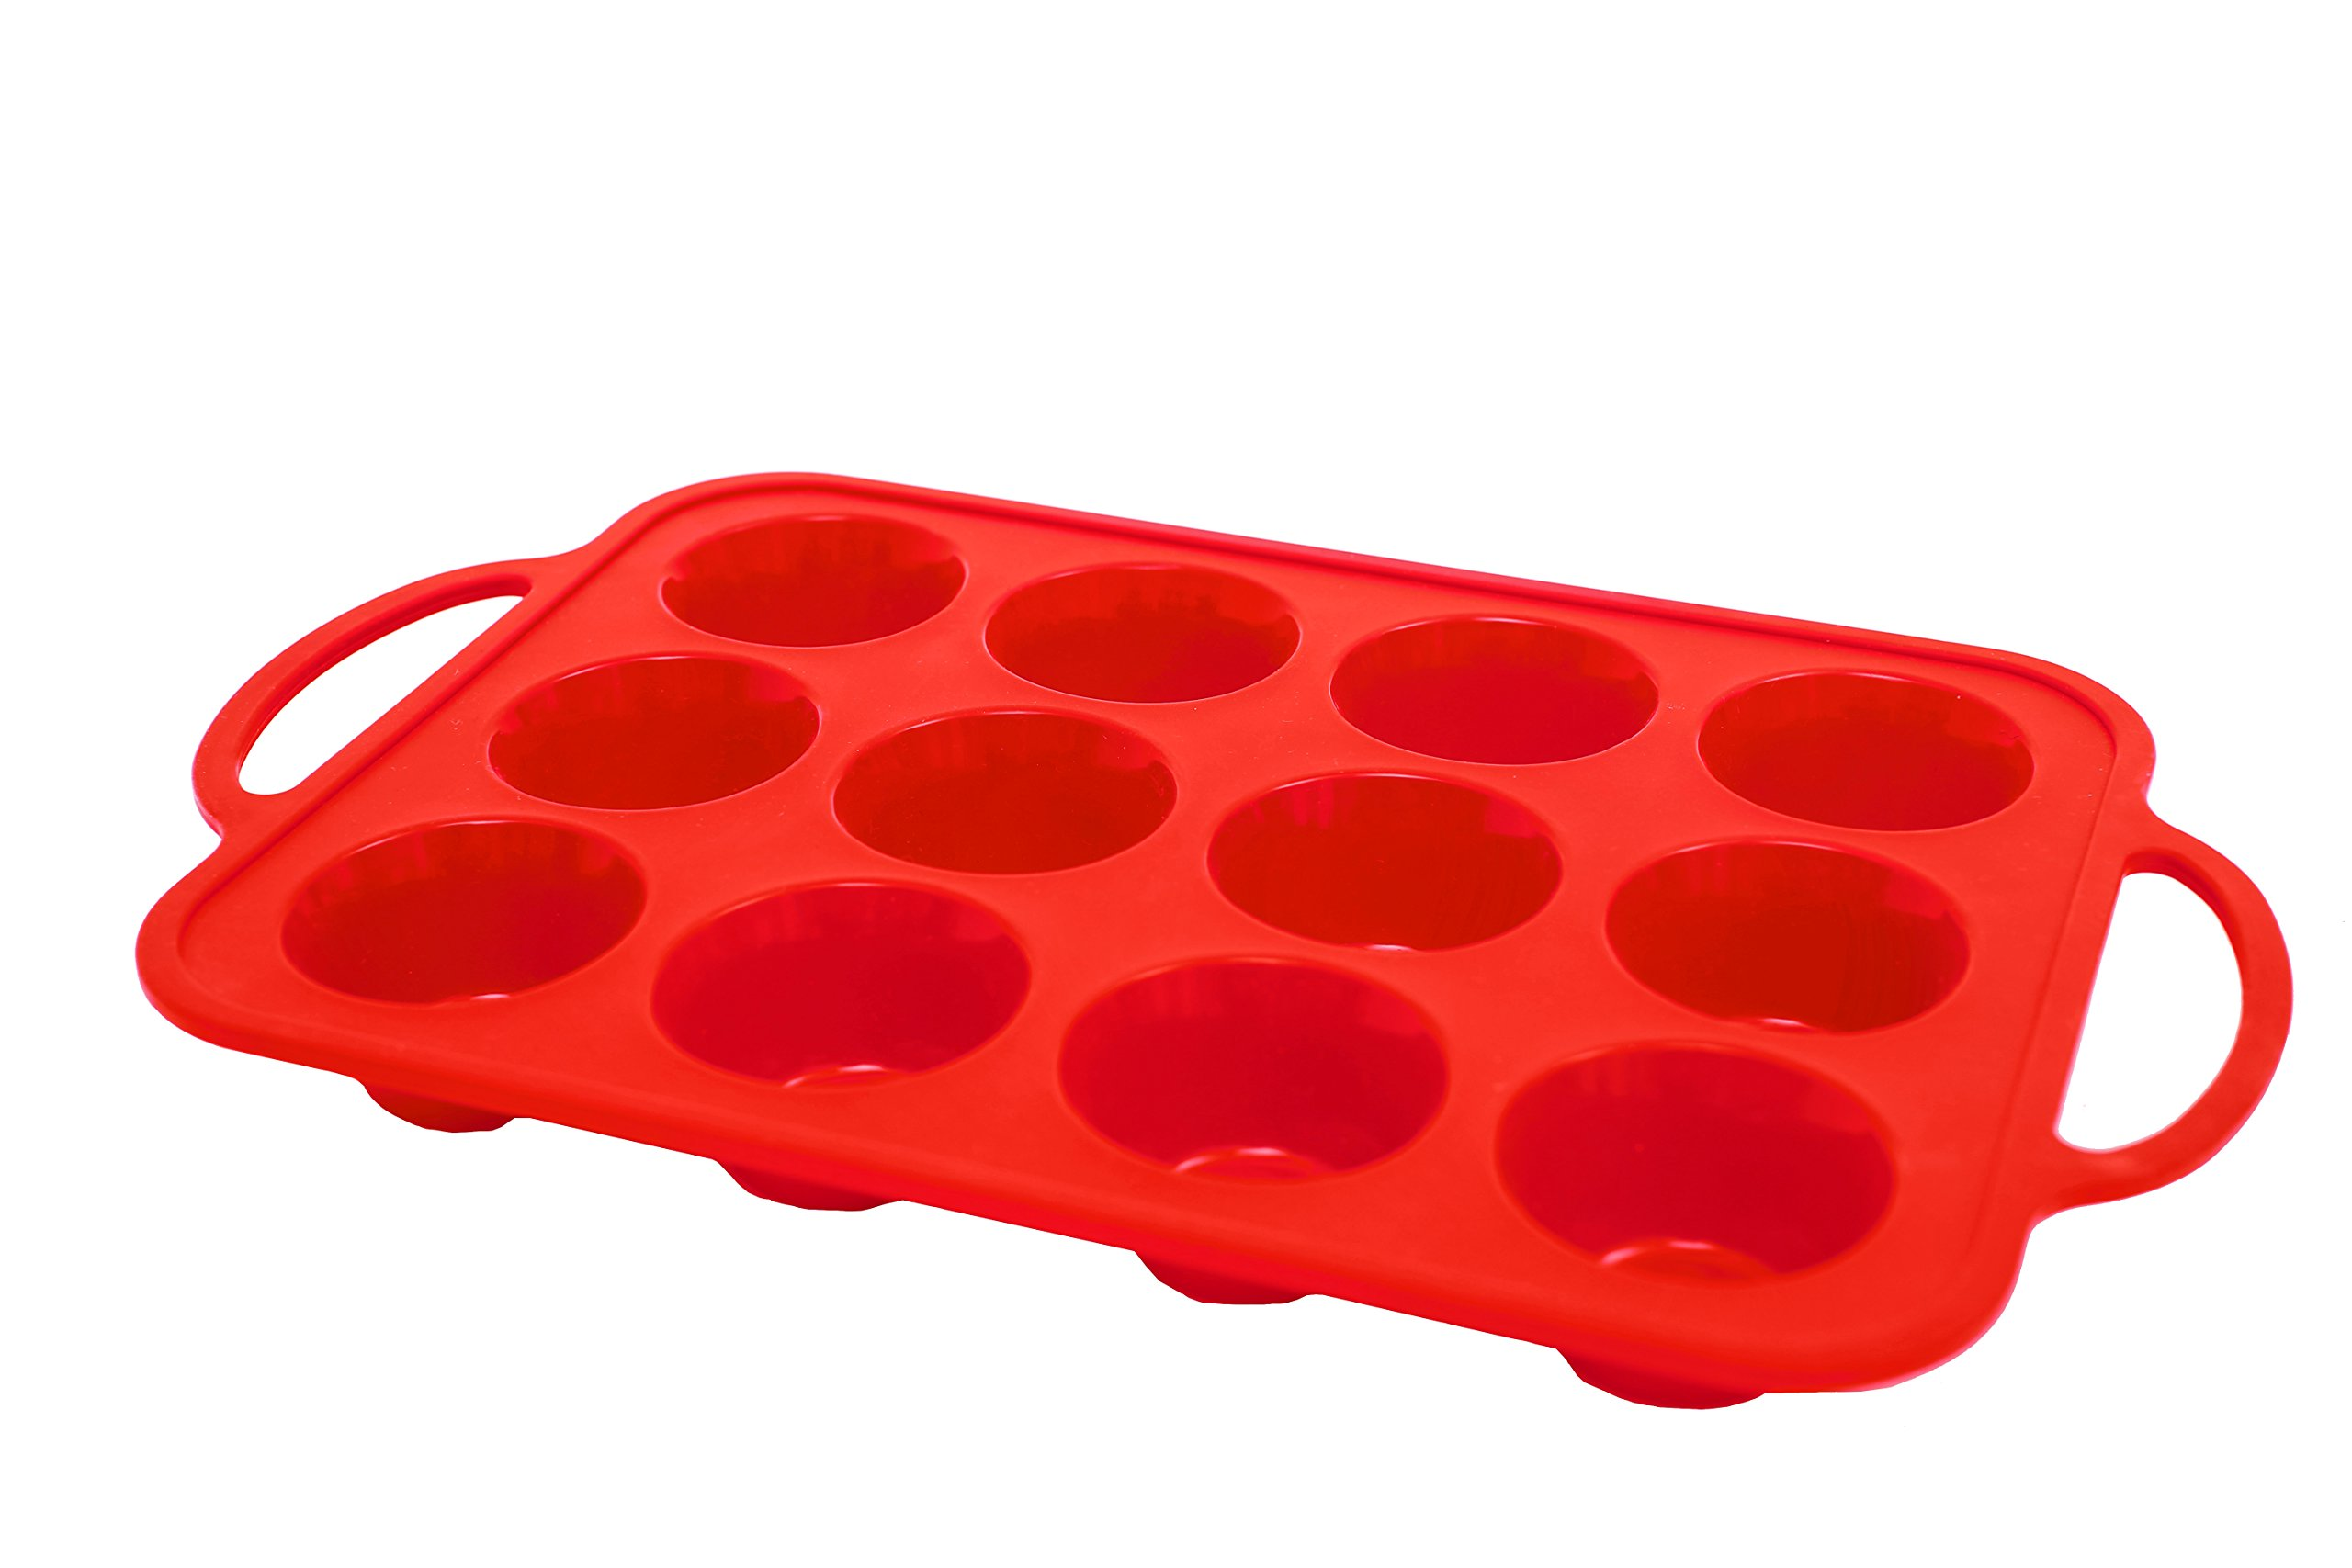 Metal Frame Premium Silicone Muffin Pan / Tin Cupcake Mold by Daisy's Dream - 12-Cup Silicone Pan / Baking Tray - Easy To Use - Simple To Clean